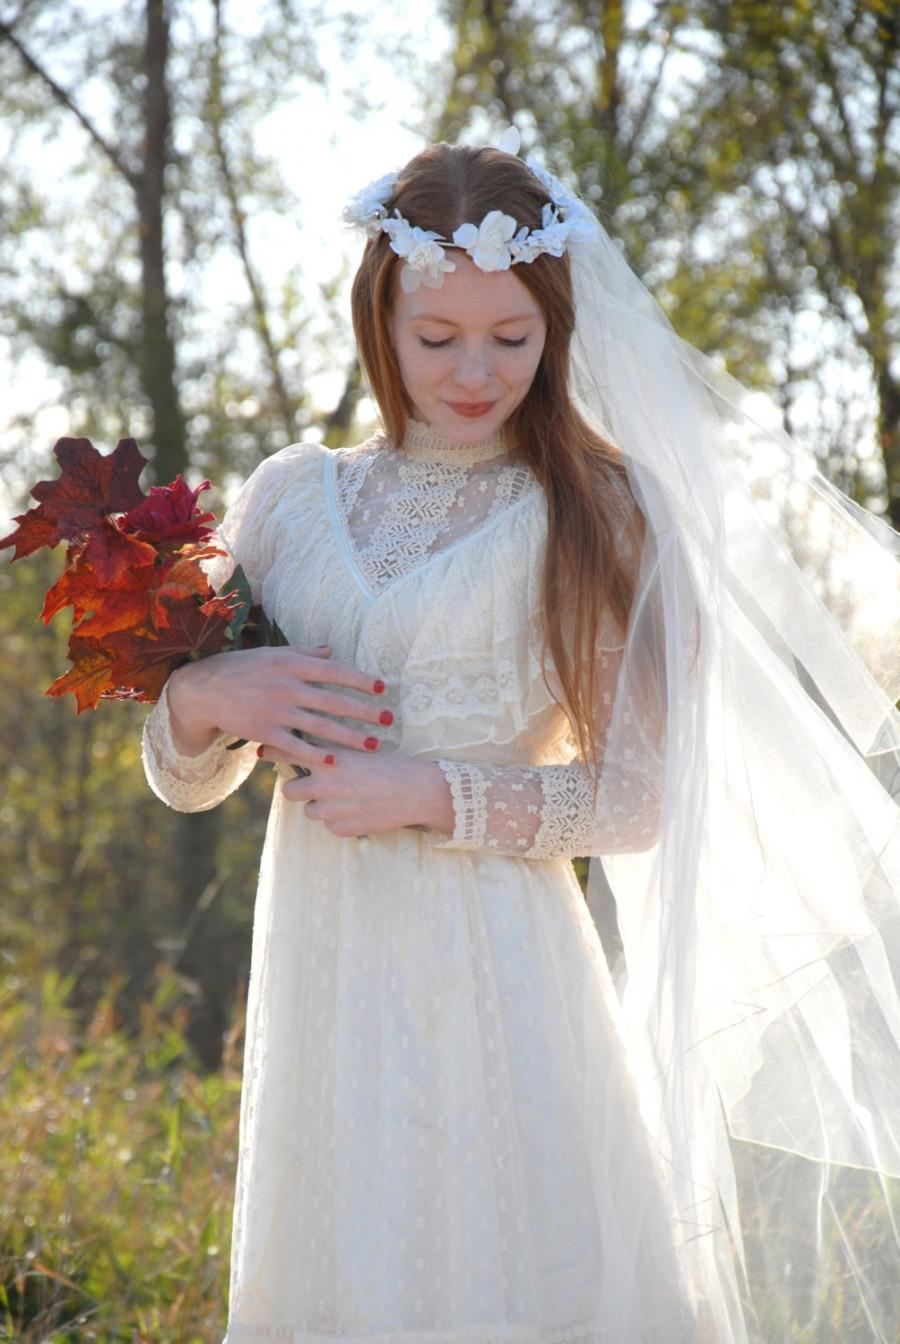 Wedding - Vintage long halo veil, ivory white boho wedding bridal headpiece tulle flowers faux pearls beads 1960s 1970s SALE